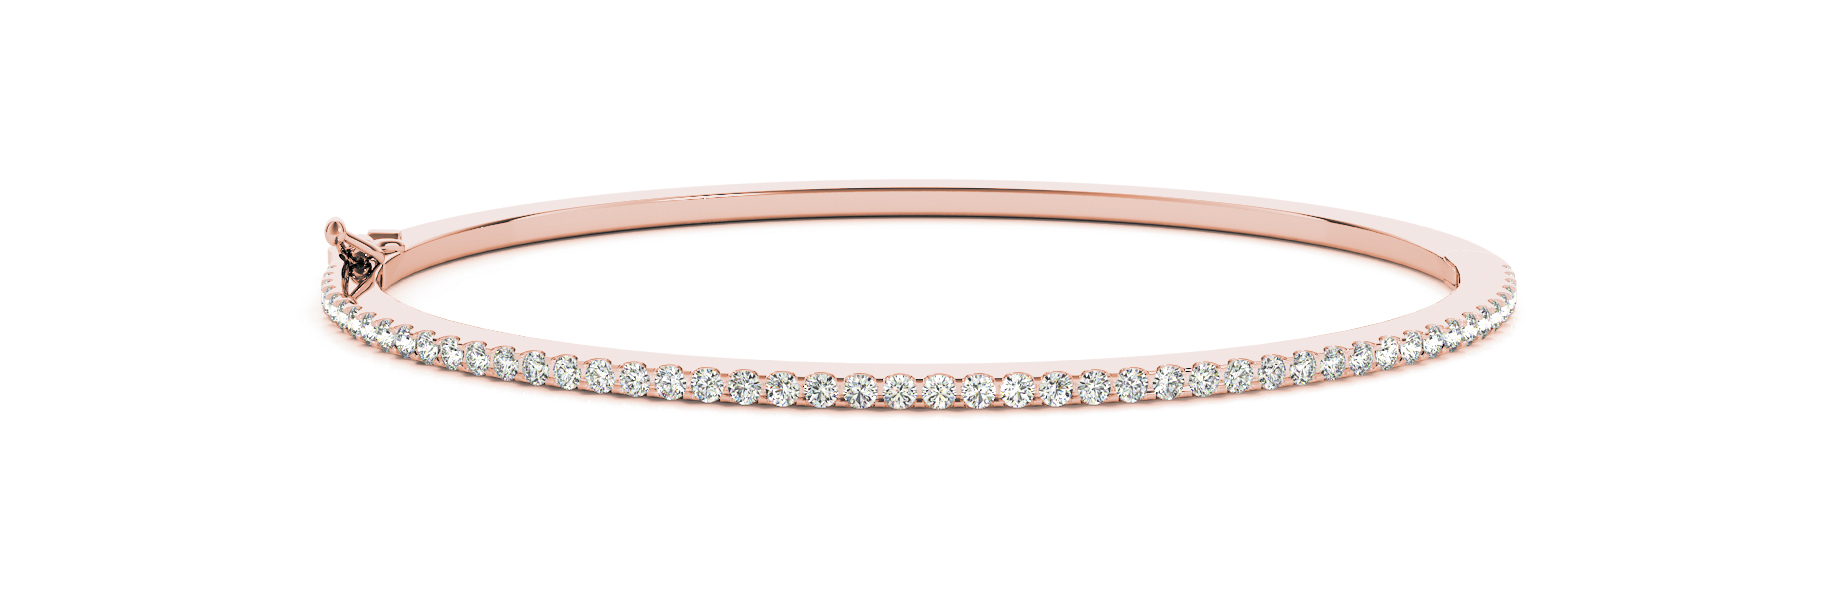 1.23 Carat Round Diamond Bangle in Rose Gold